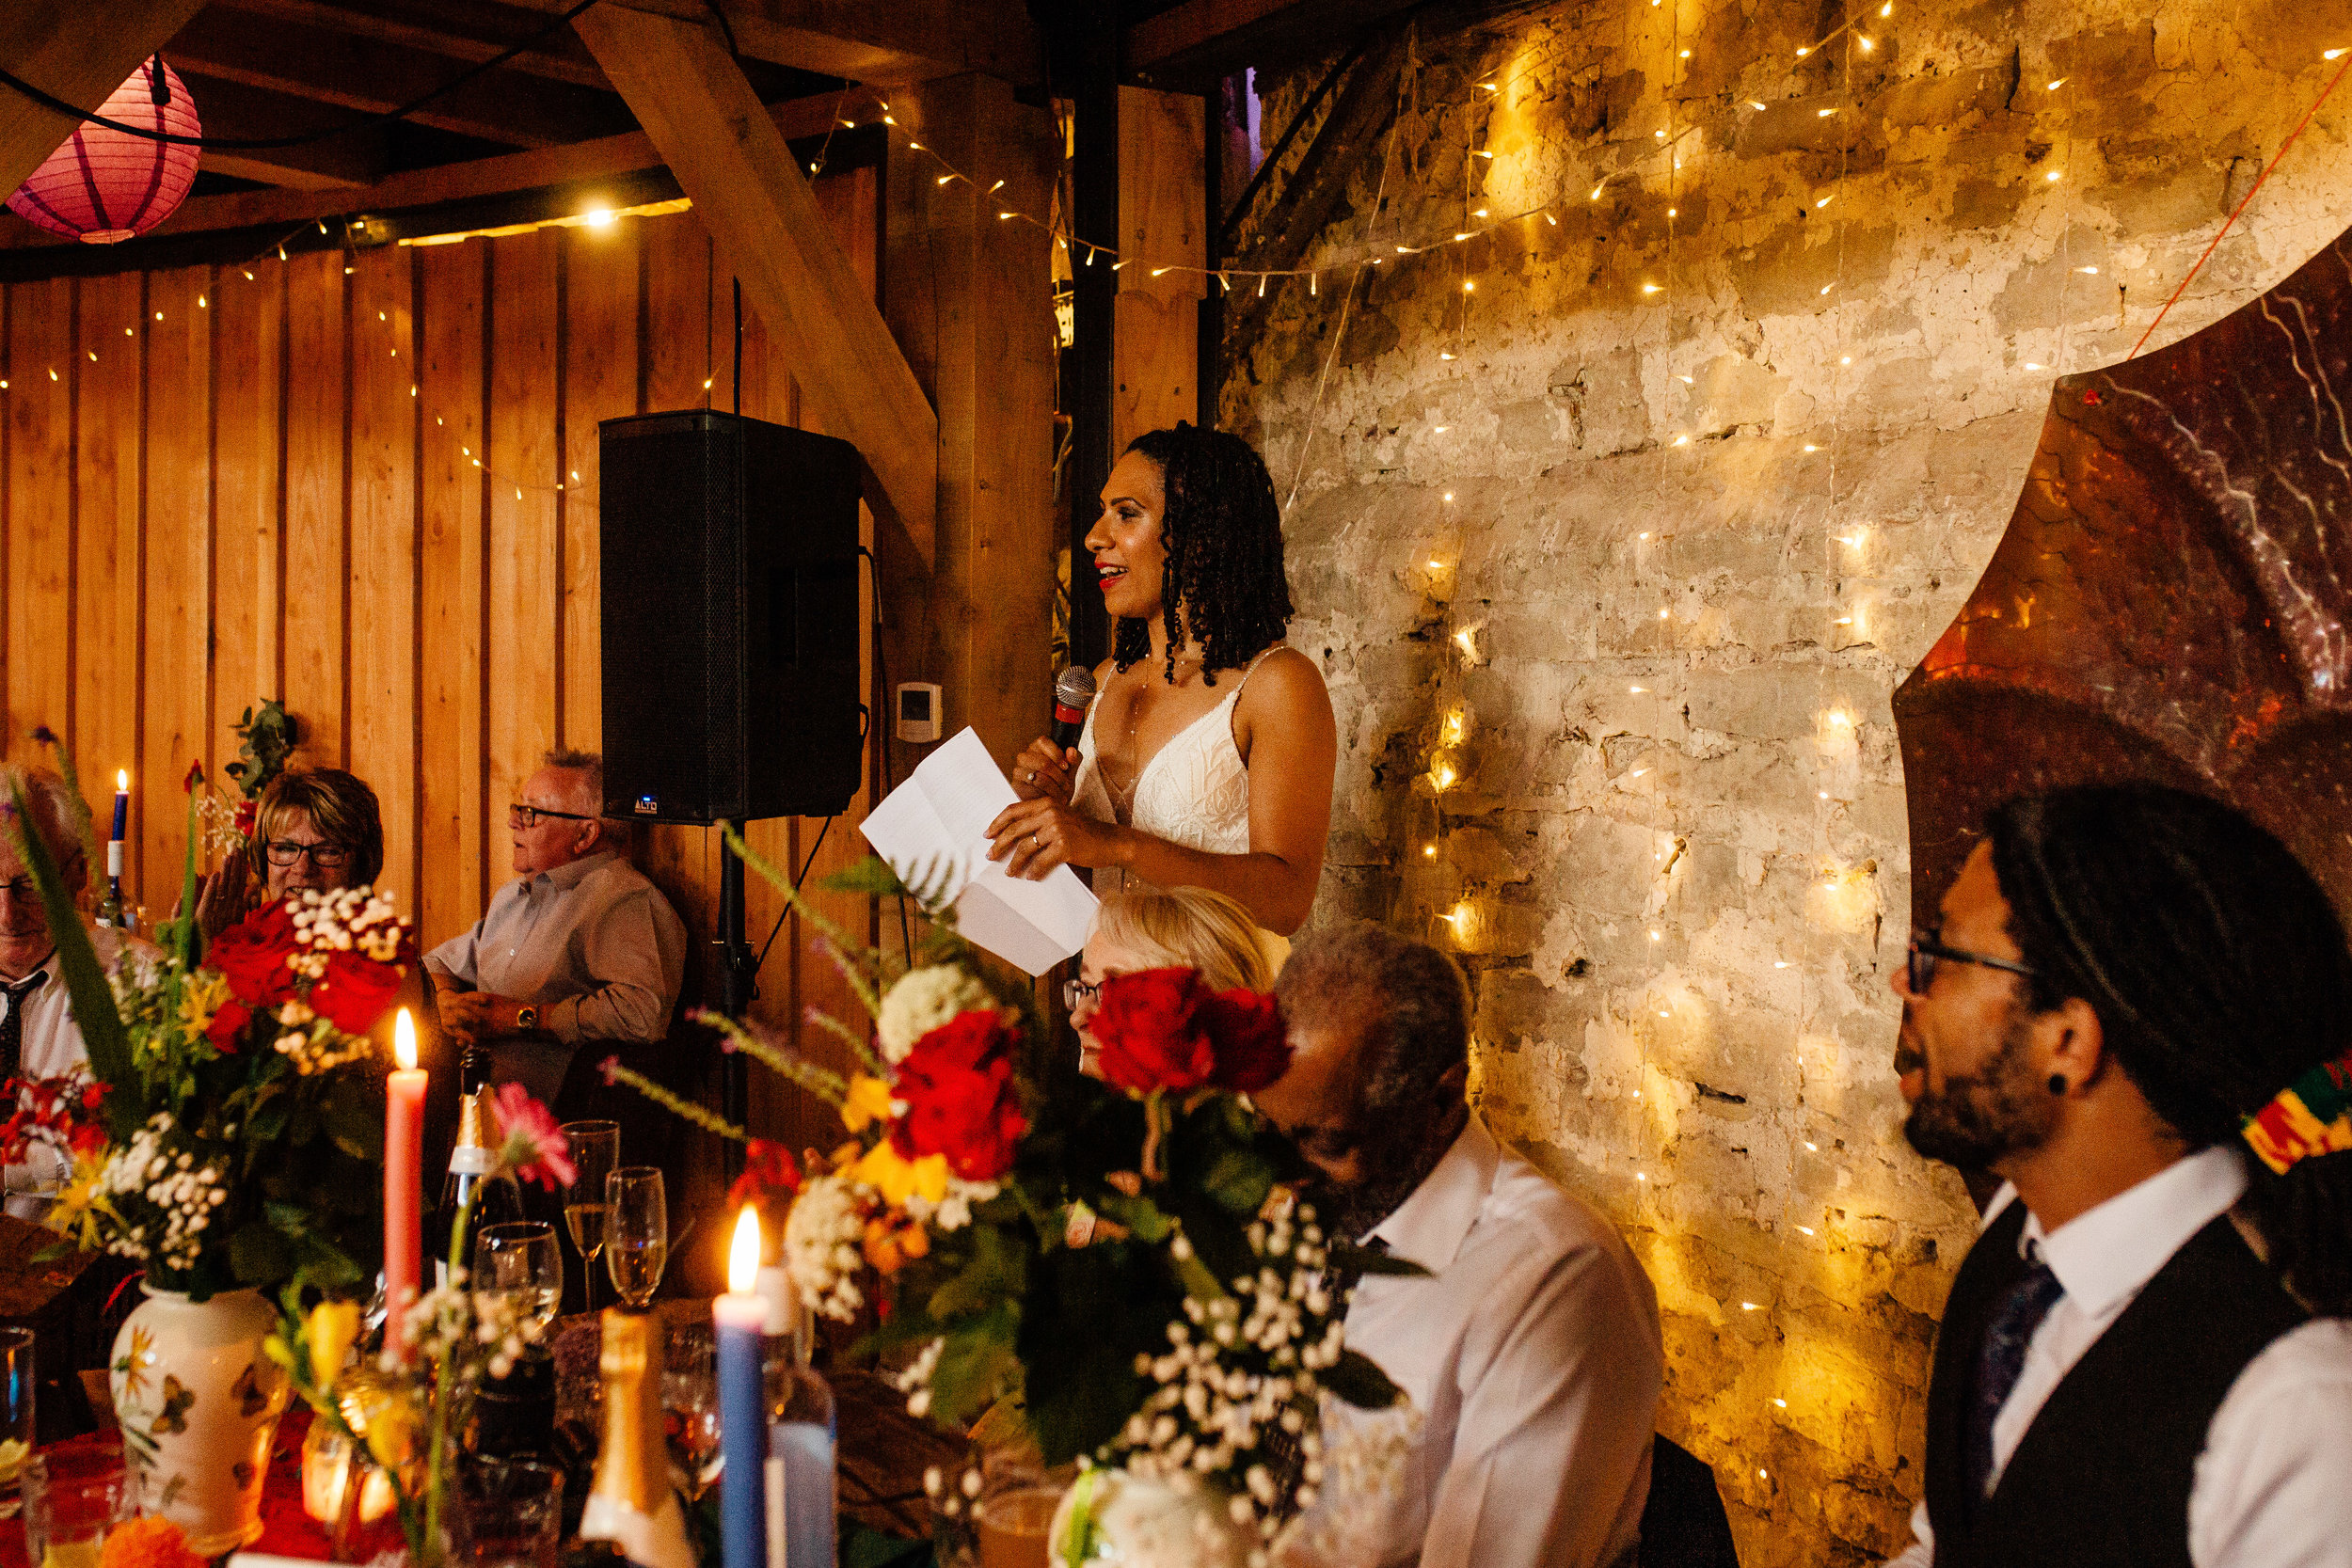 Coed Weddings and Events